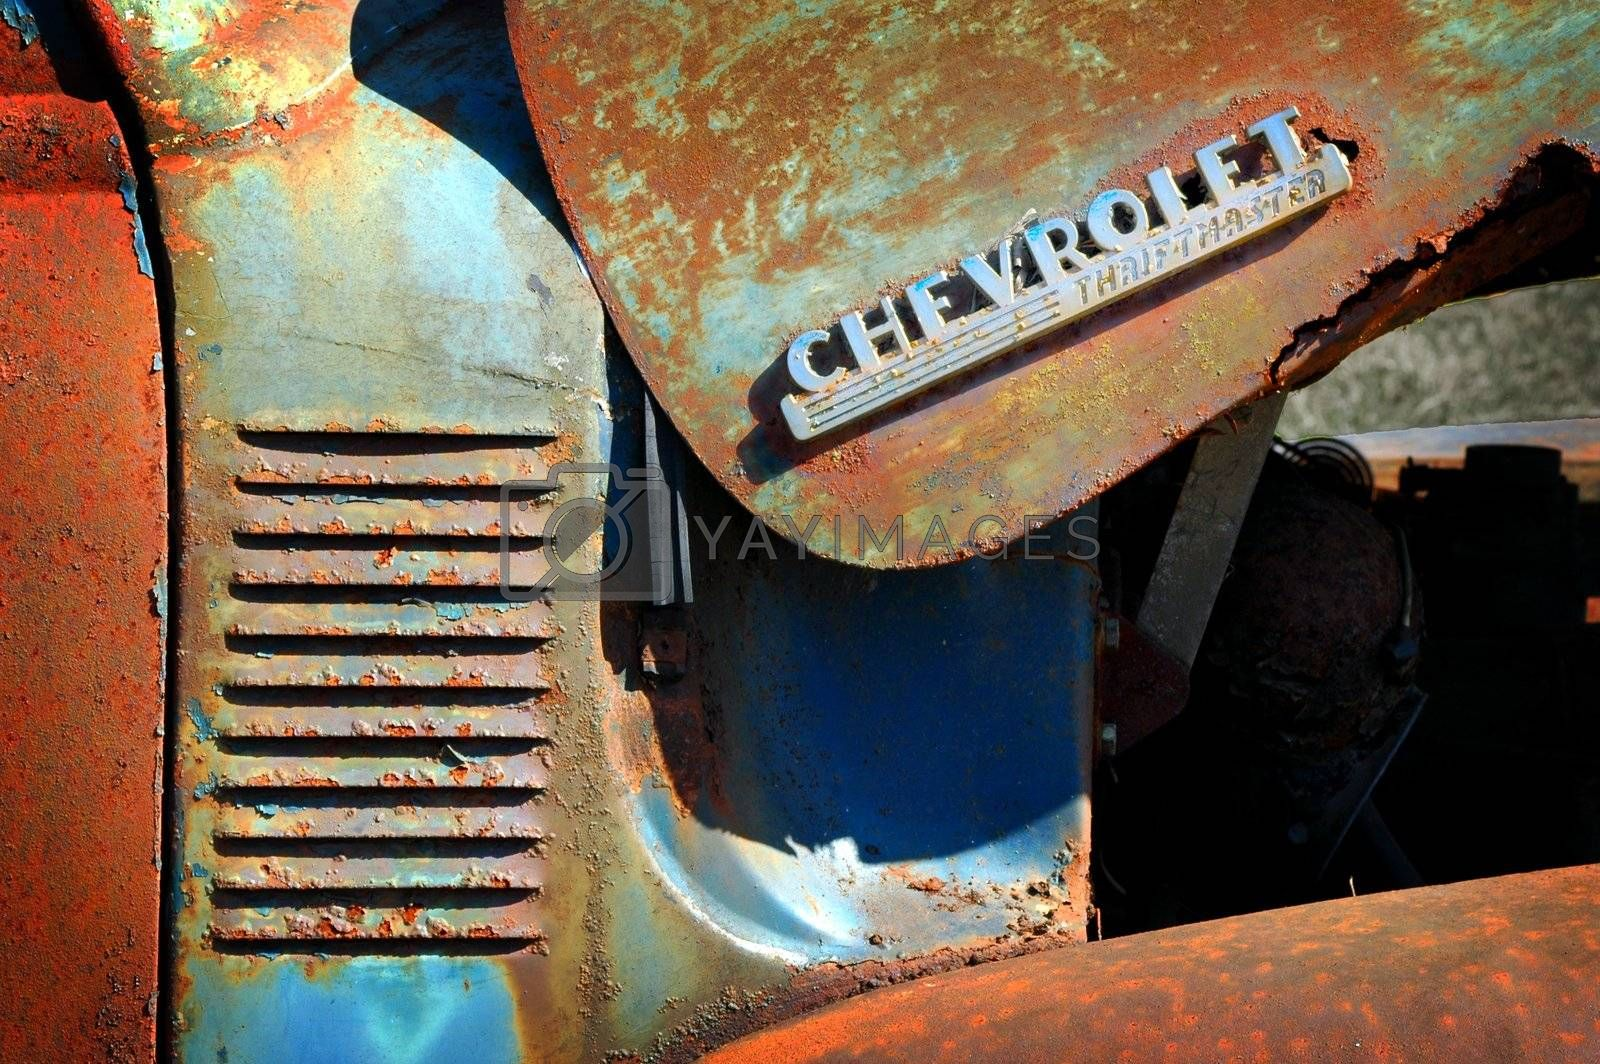 Close up view of an old abandoned rusted out Thriftmaster Pick Up truck showing the Thriftmaster logo and the side grill.